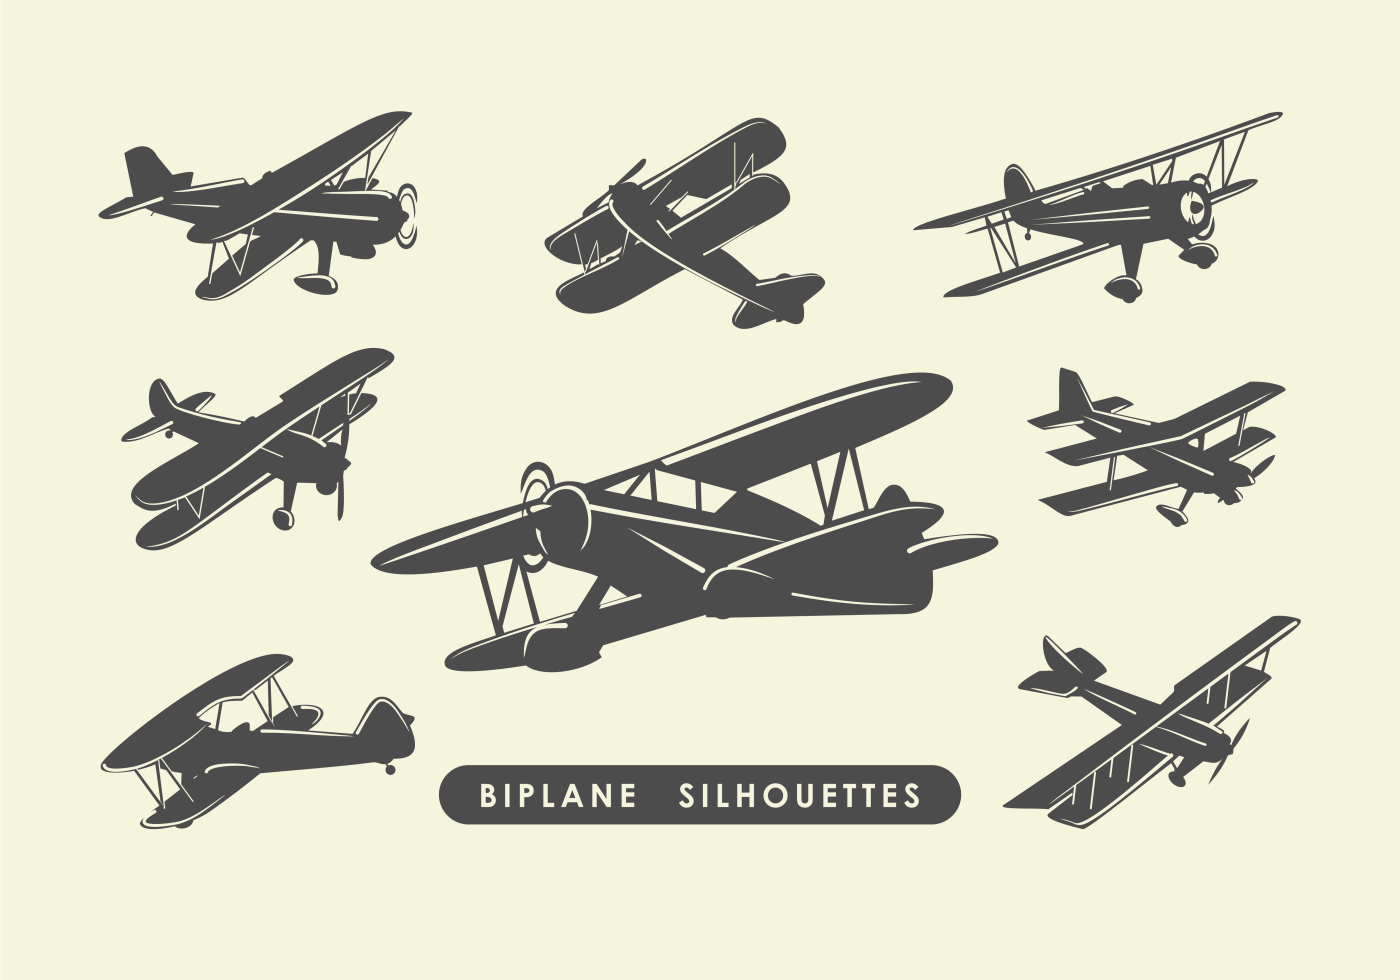 Biplane Silhouettes Download Free Vector Art Stock